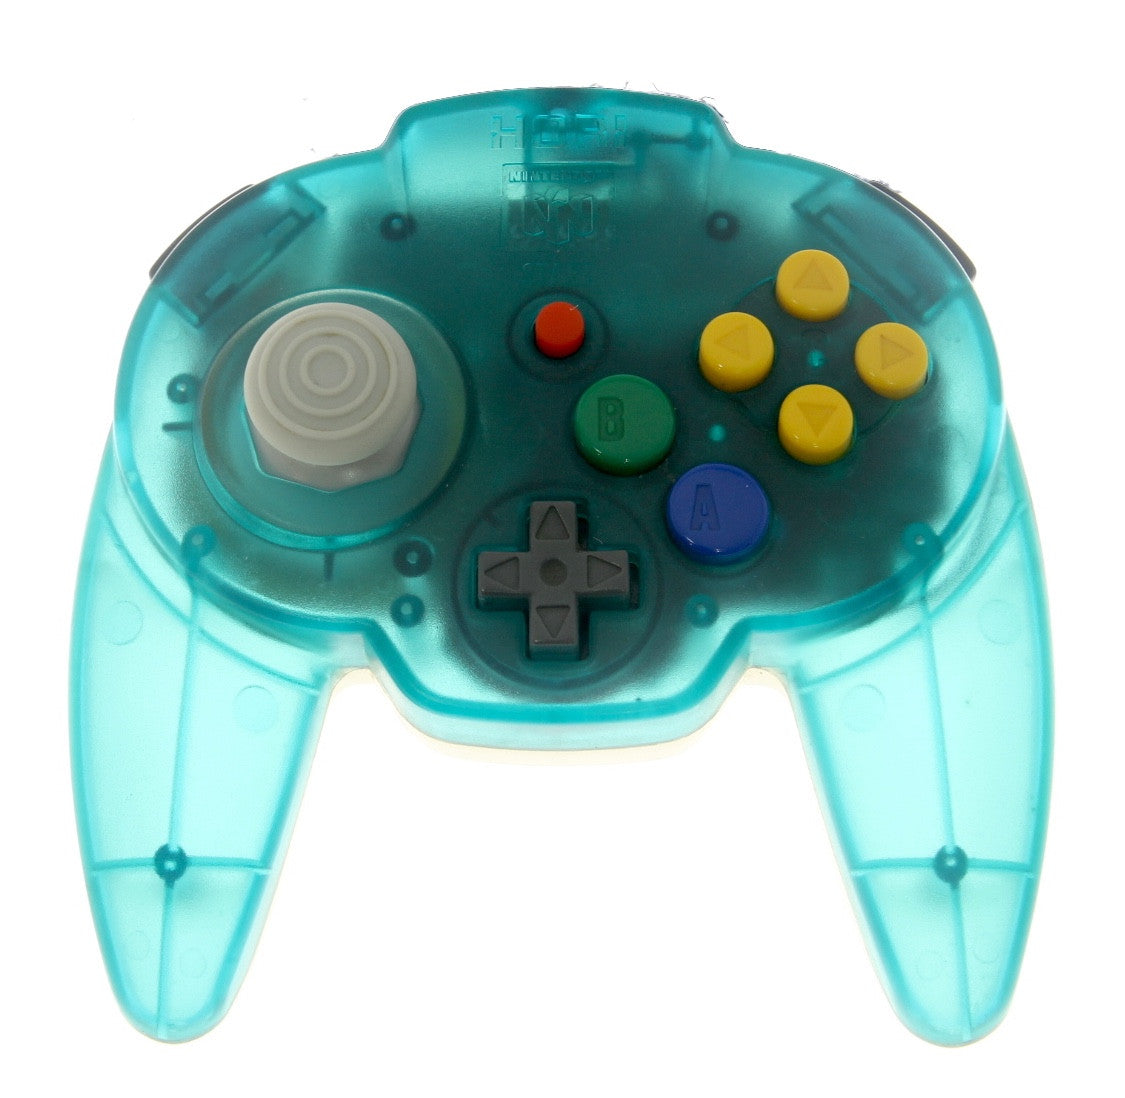 Image 1 for HORI Pad Mini64 Ocean Blue (no box/manual)